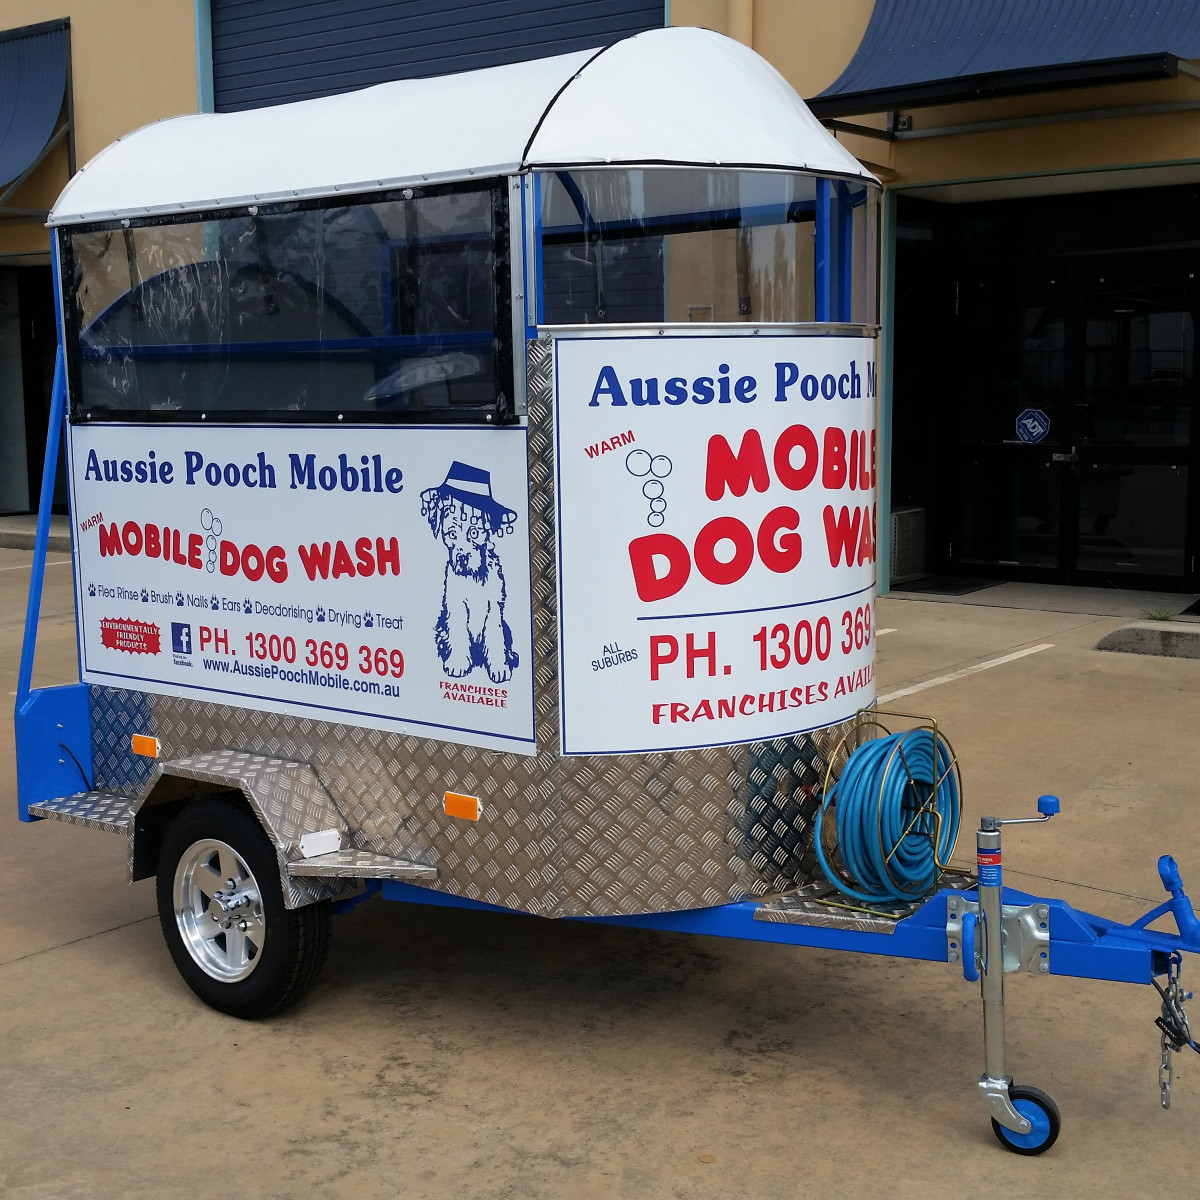 aussie pooch mobile Jim's fee for washing a dog, including blow-drying, ranged from $28-$38 alternative courses of action how will aussie pooch mobile plan and shape its future expansion a) in planning for future expansion, how will apm expand internationally the first decision should be in which countries, regions or cities to enter.